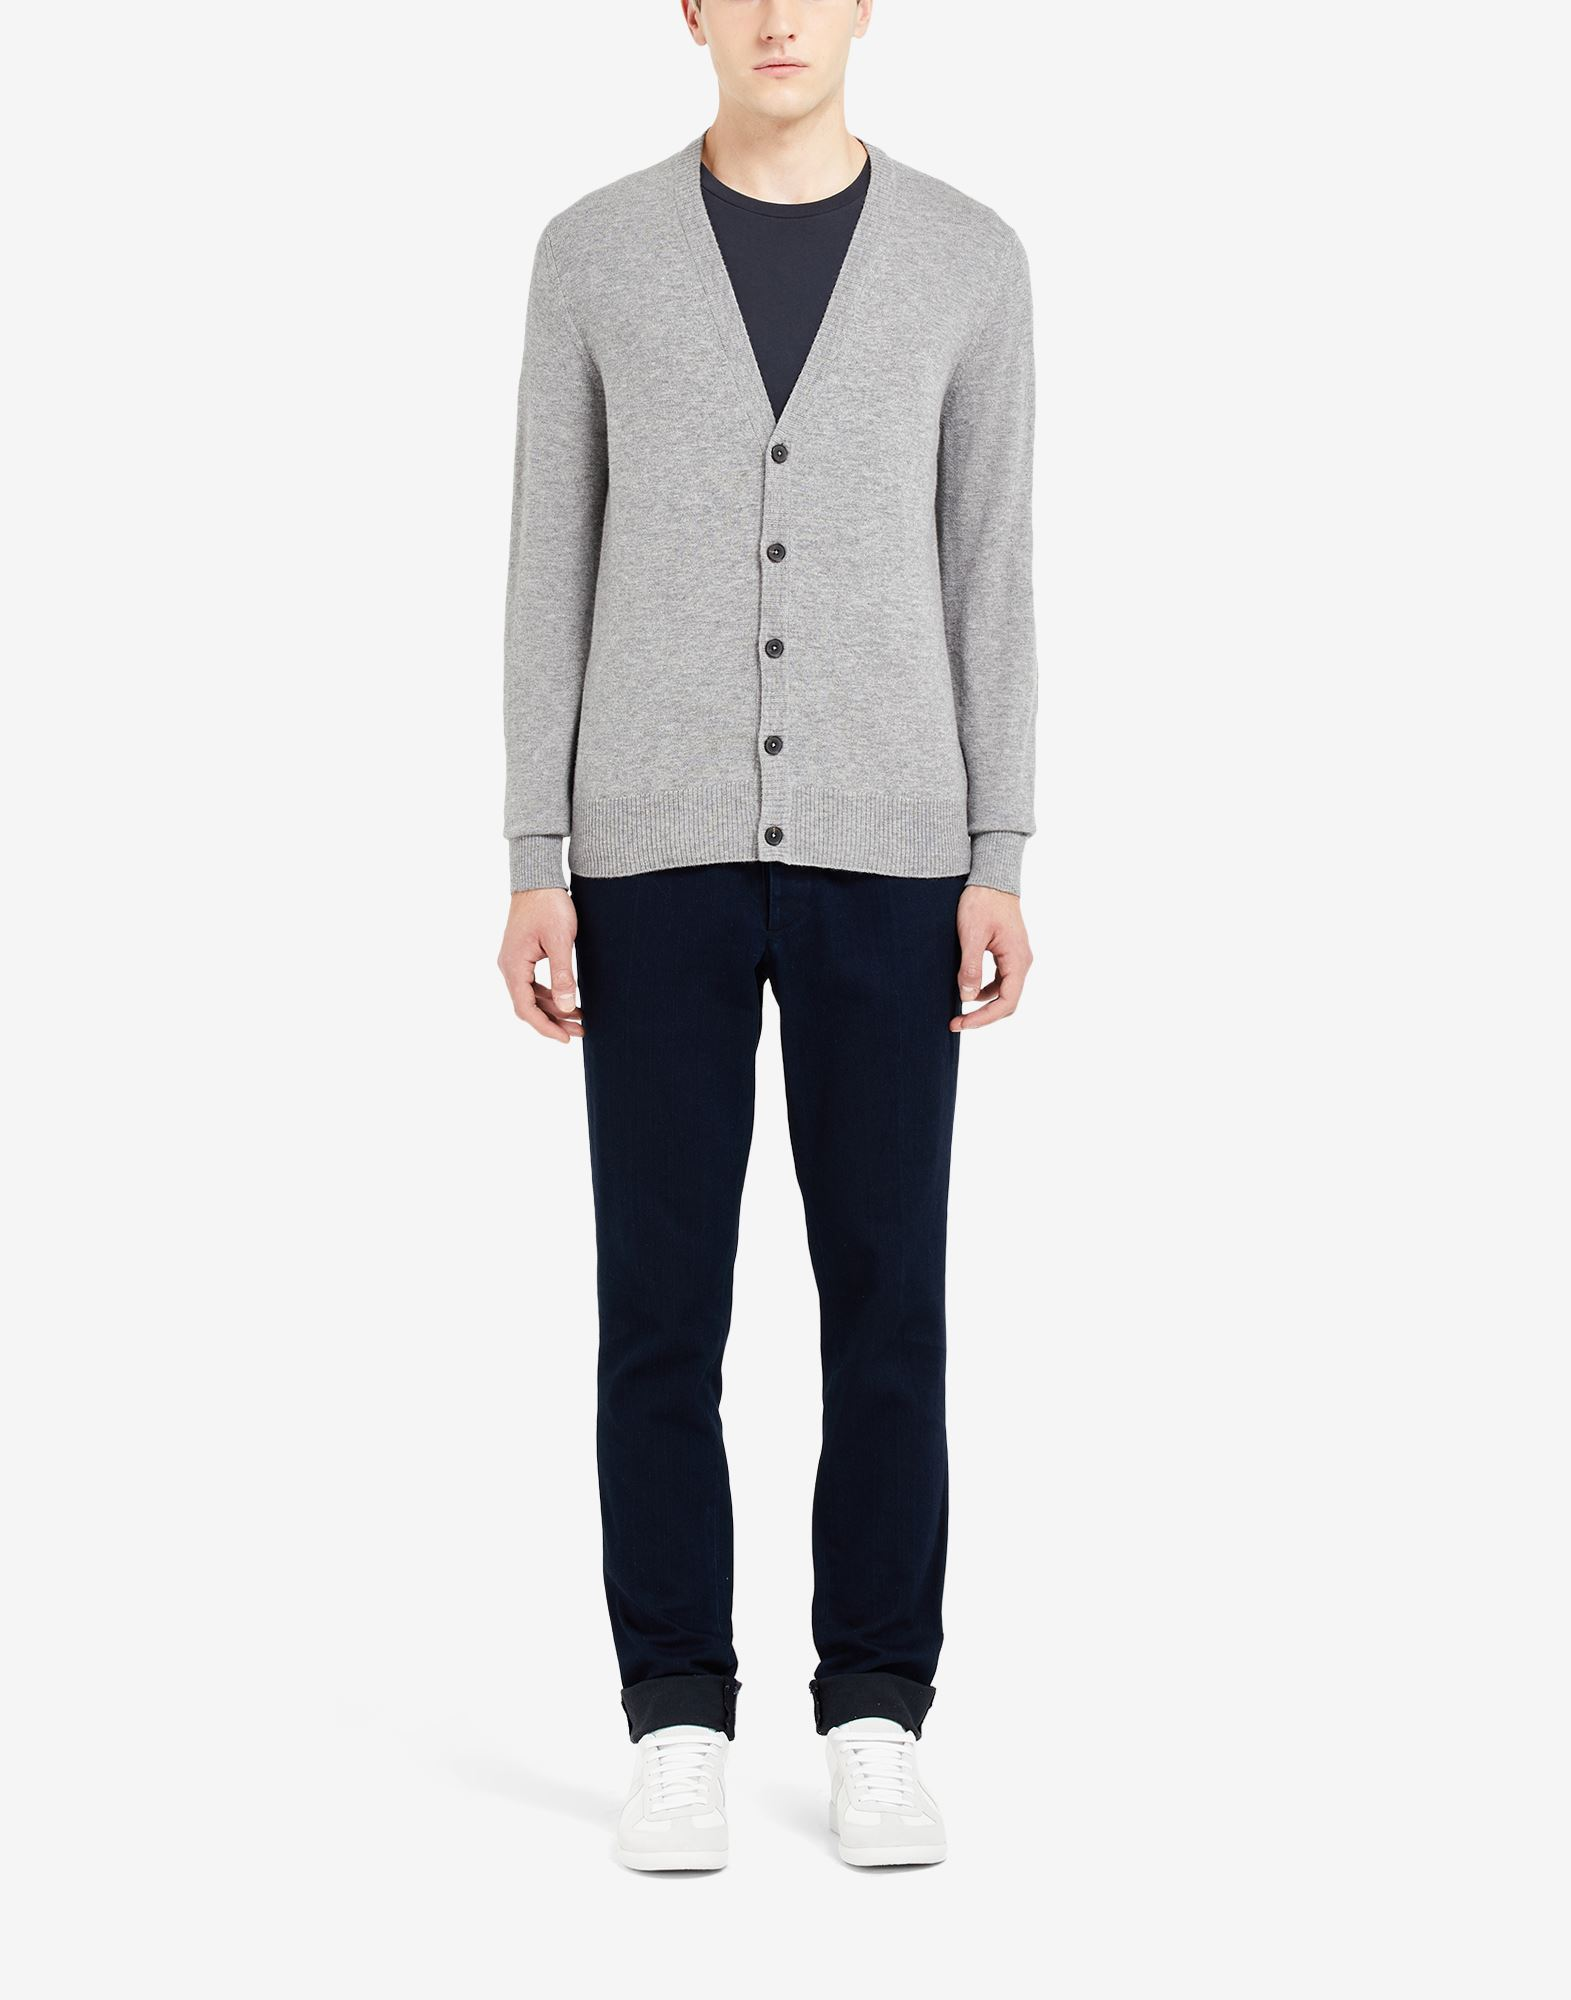 MAISON MARGIELA Leather elbow patch cardigan Cardigan Man r